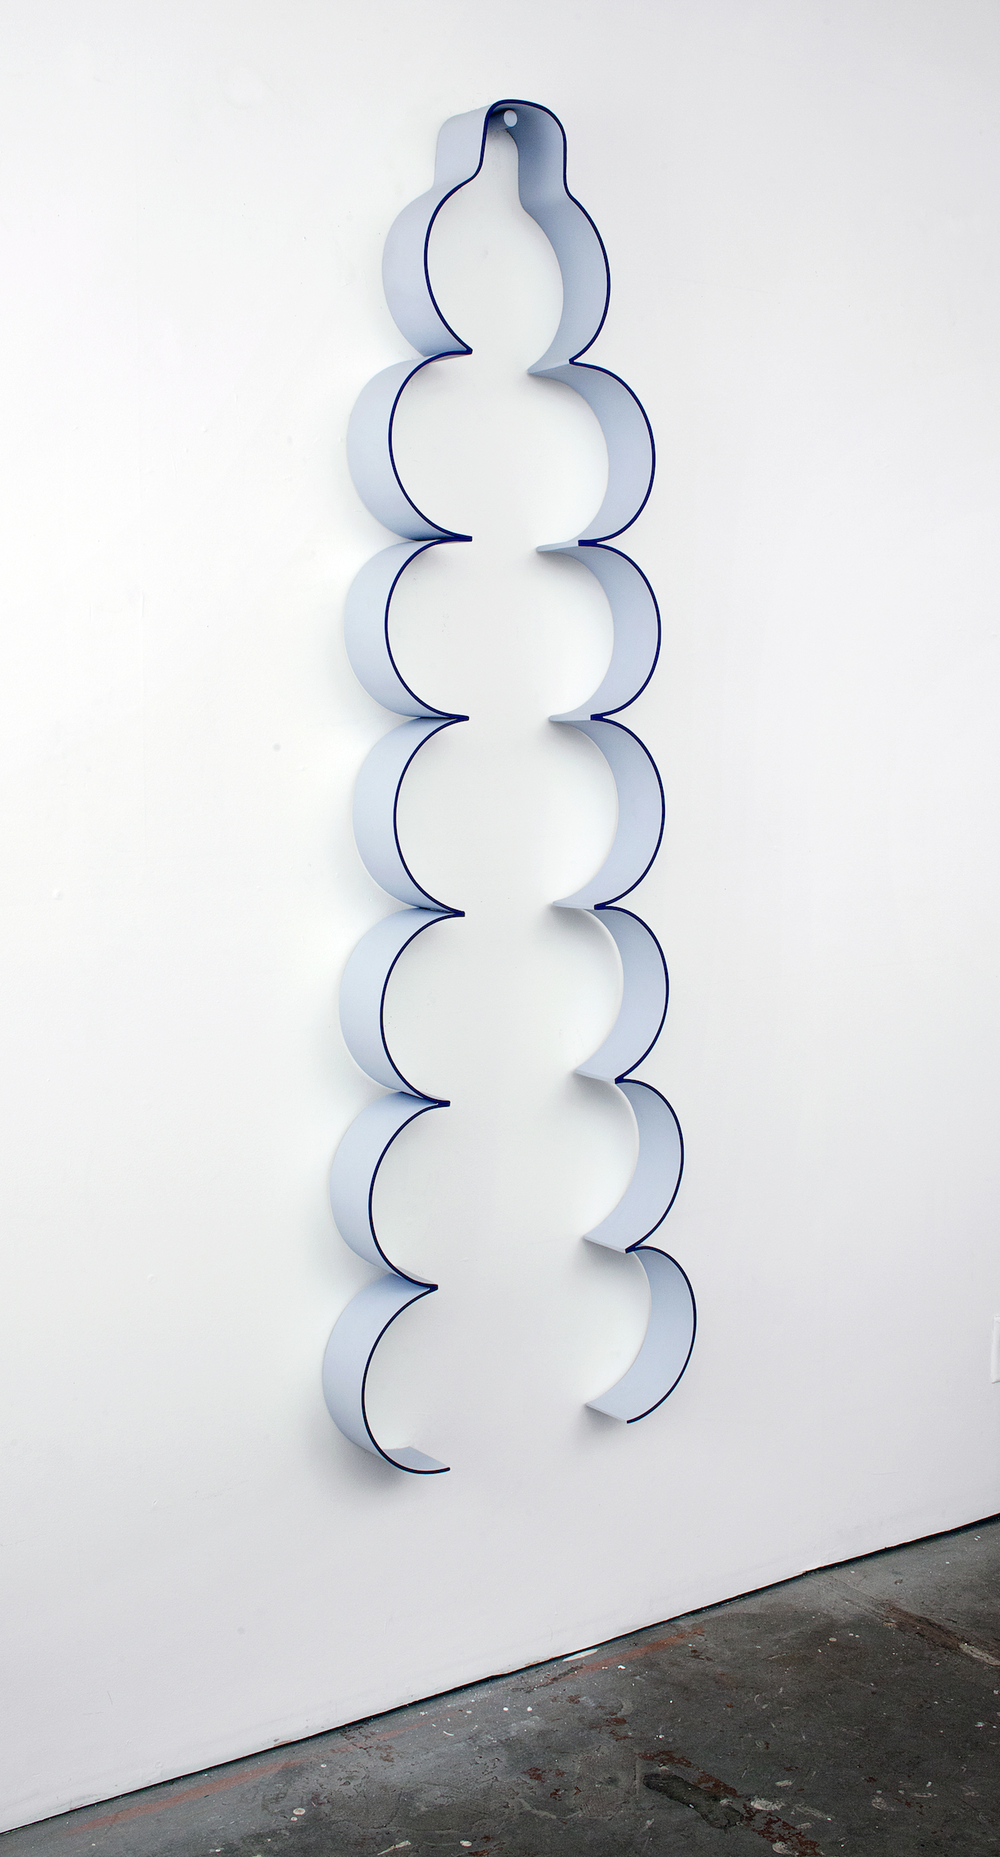 "Lisa Williamson Up-Do 2012 Acrylic on powder-coated steel 75"" x 23"" x 4"" LW094"